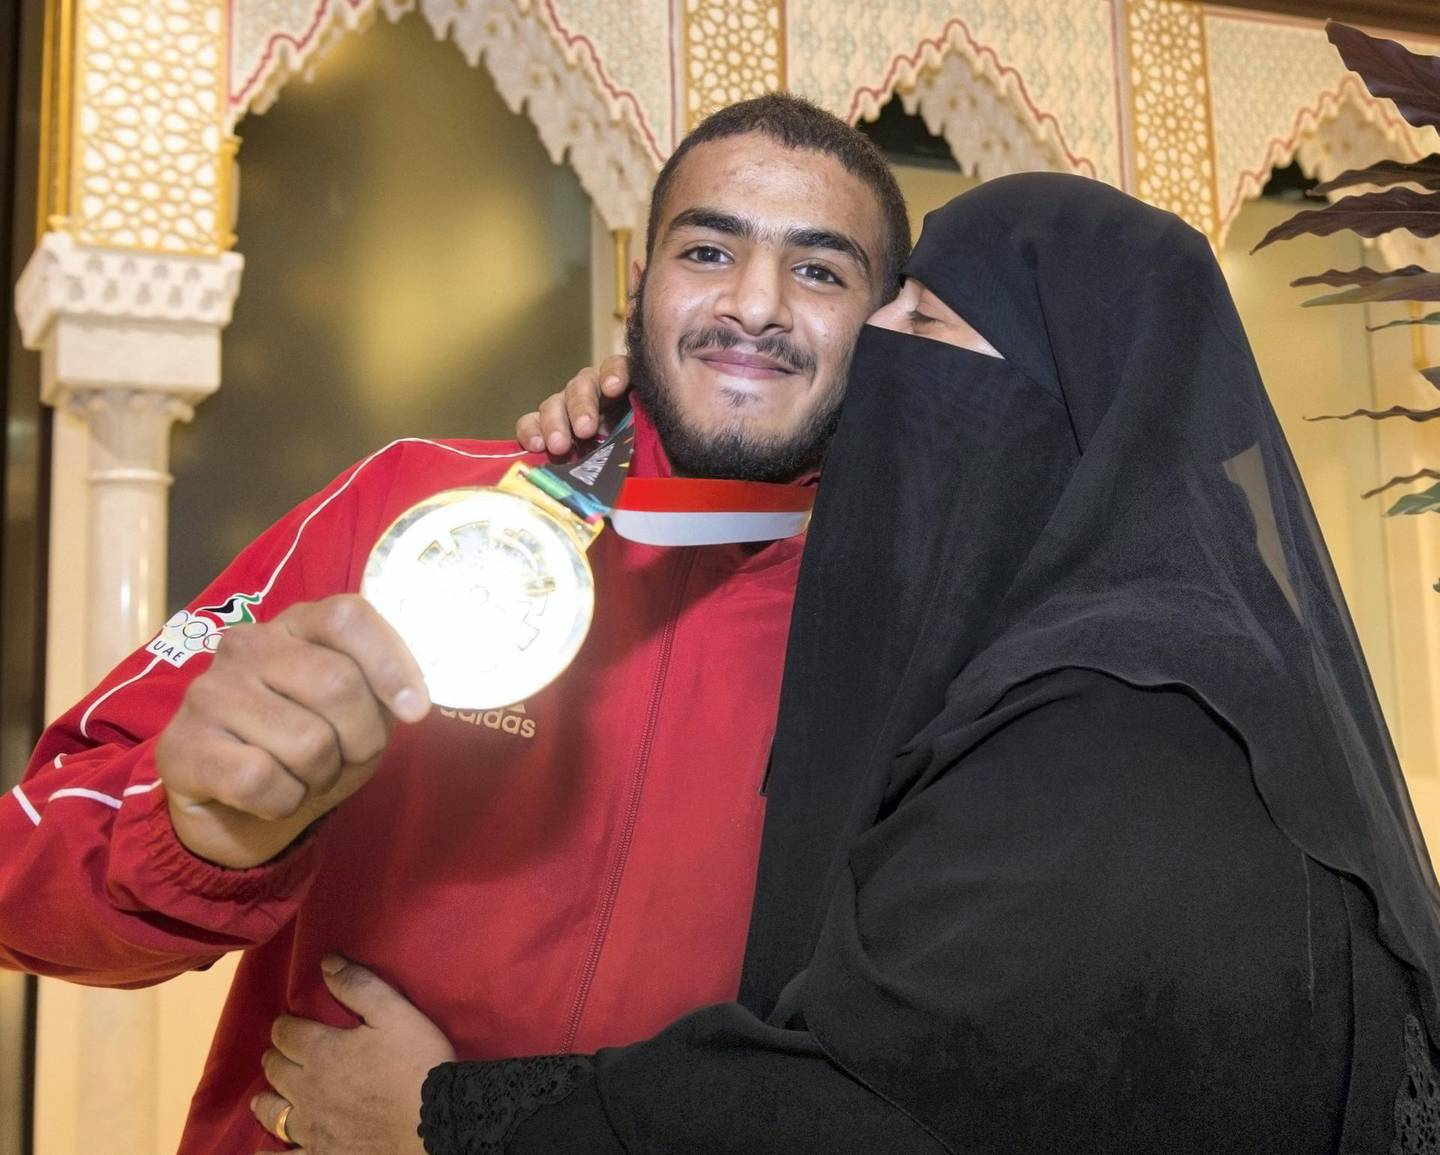 ABU DHABI, UNITED ARAB EMIRATES  27 August 2018- Hamad Nawad gold medalist 56kg division with his mother giving him a kiss at the welcome celebration for the UAE National Jiu-Jitsu team from the Asian Games (ASIAD) in Jakarta, Indonesia. The team gathered  total of 9 medals in various weight categories at Abu Dhabi International Airport VIP terminal, 27 August 2018.  Leslie Pableo for The National for Anna Zackarias story